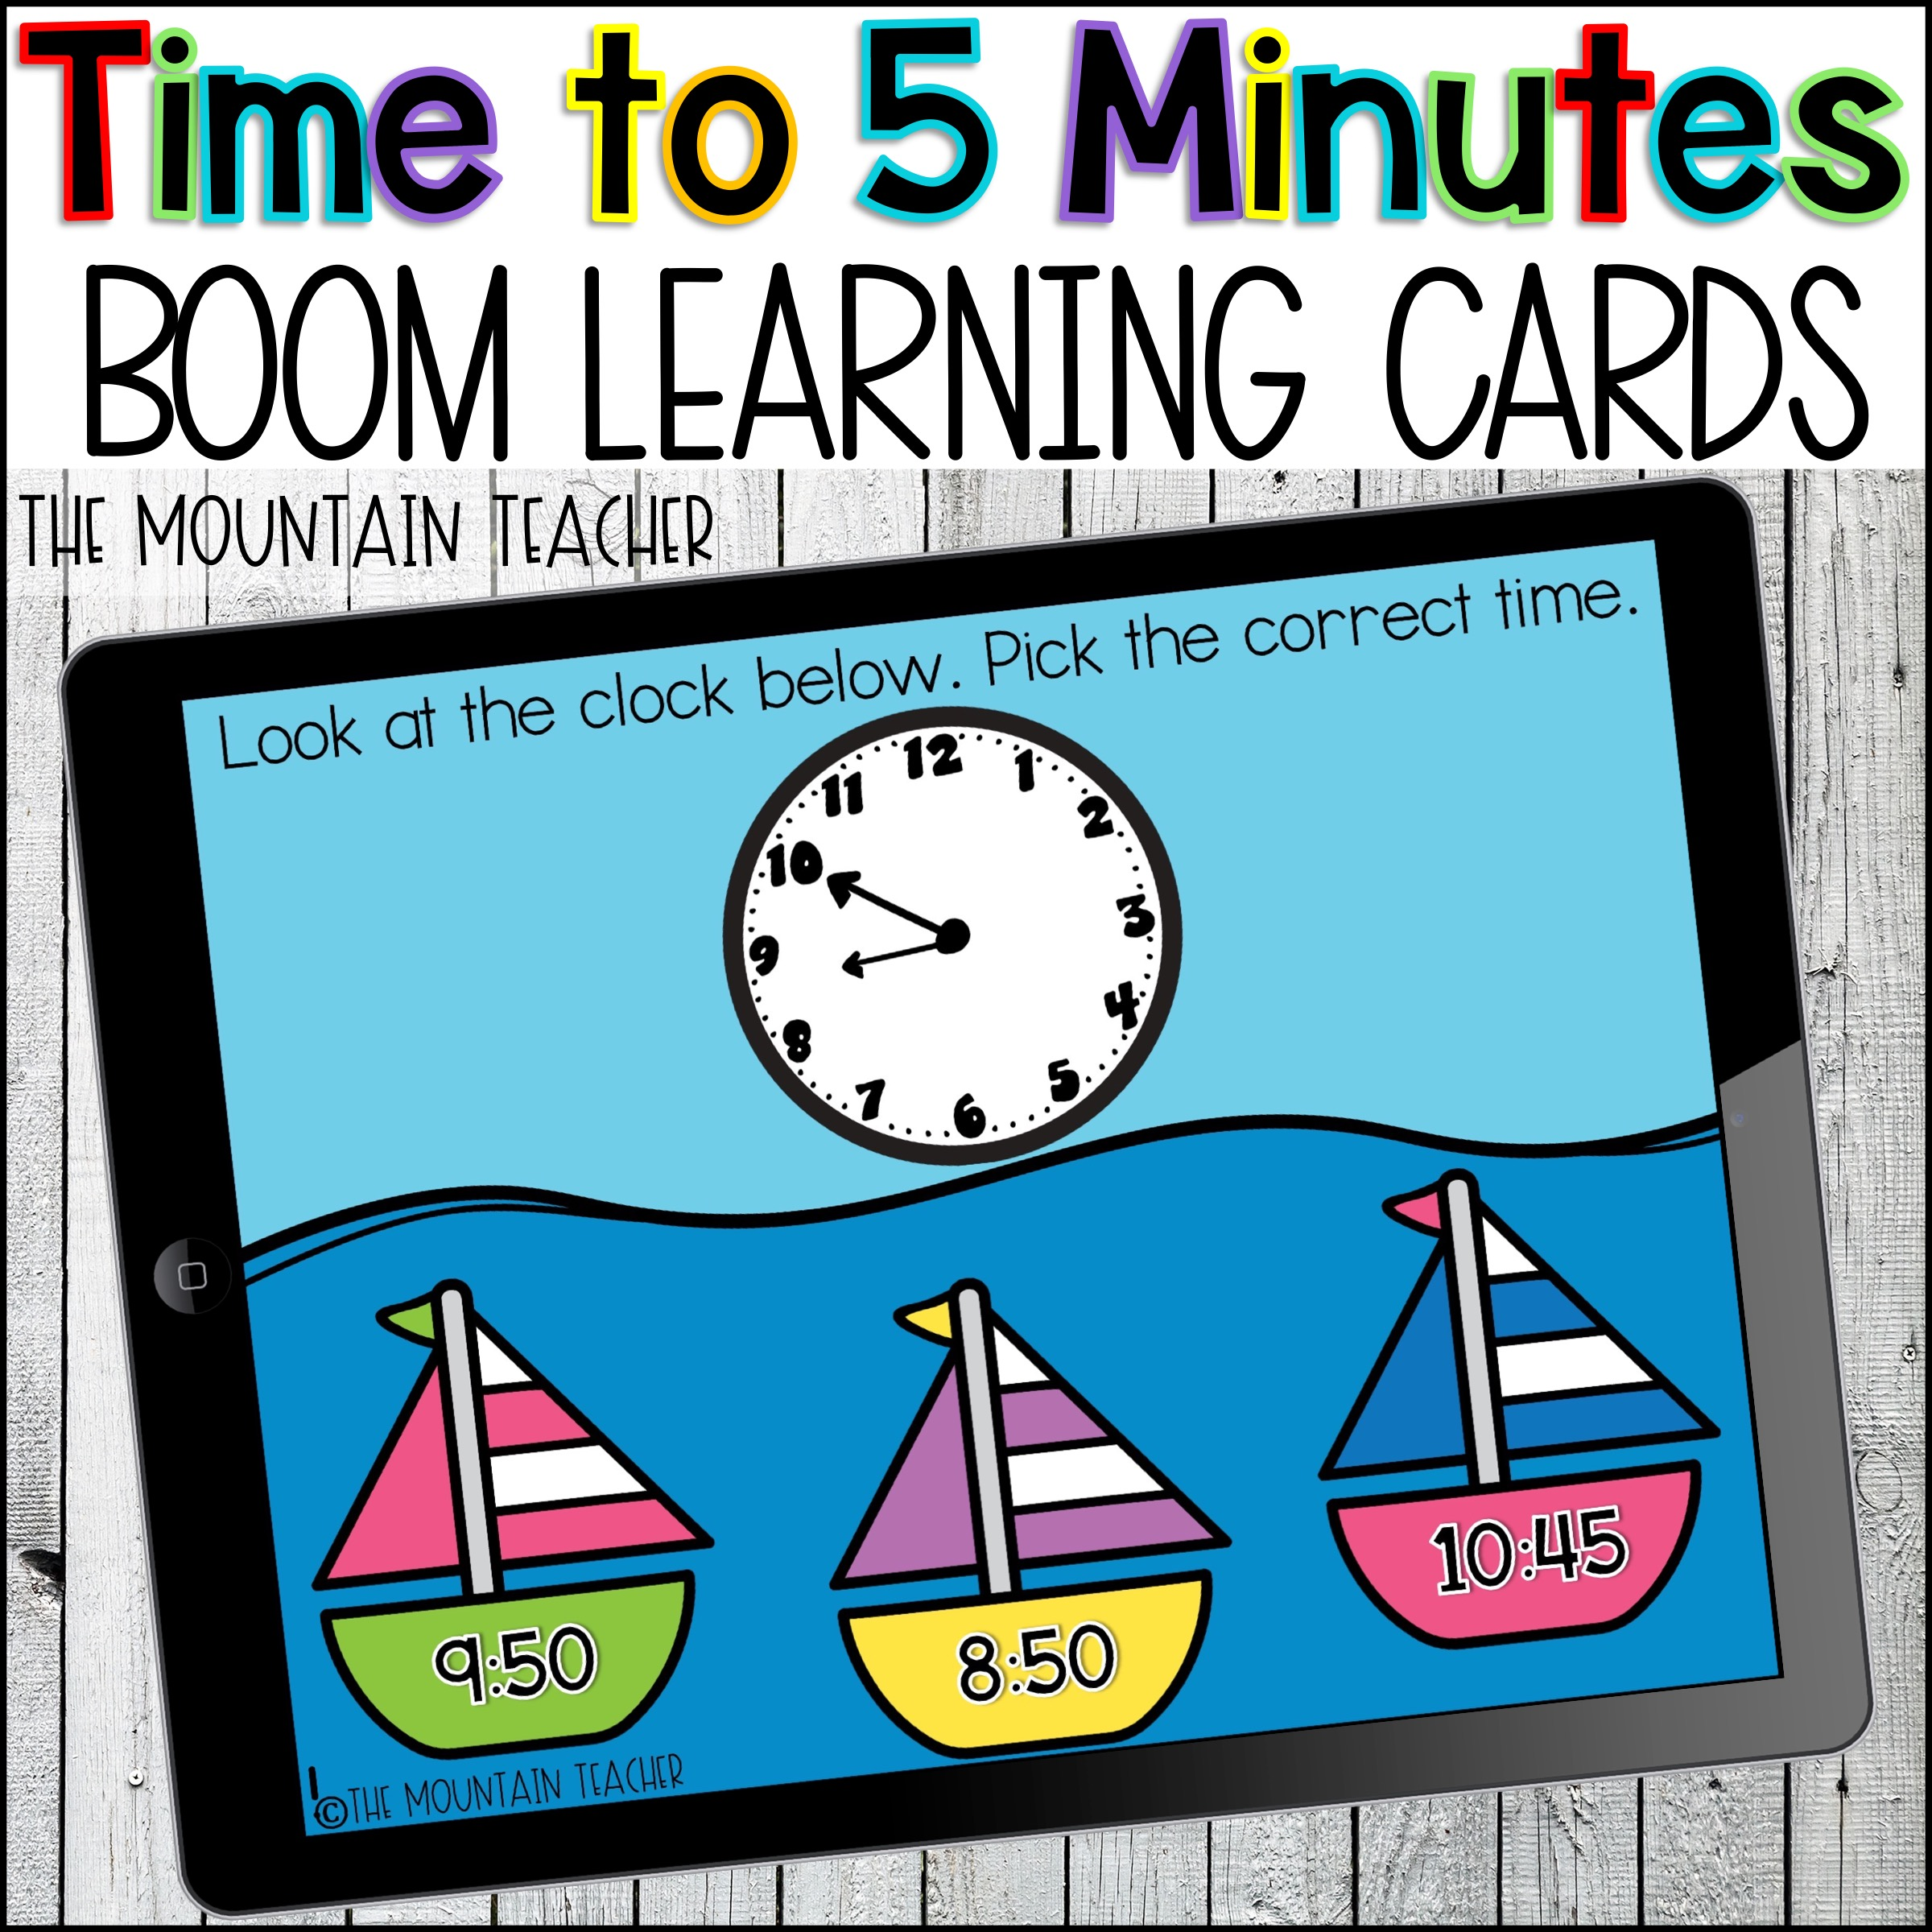 Time to 5 Minutes BOOM Learning Cards by The Mountain Teacher